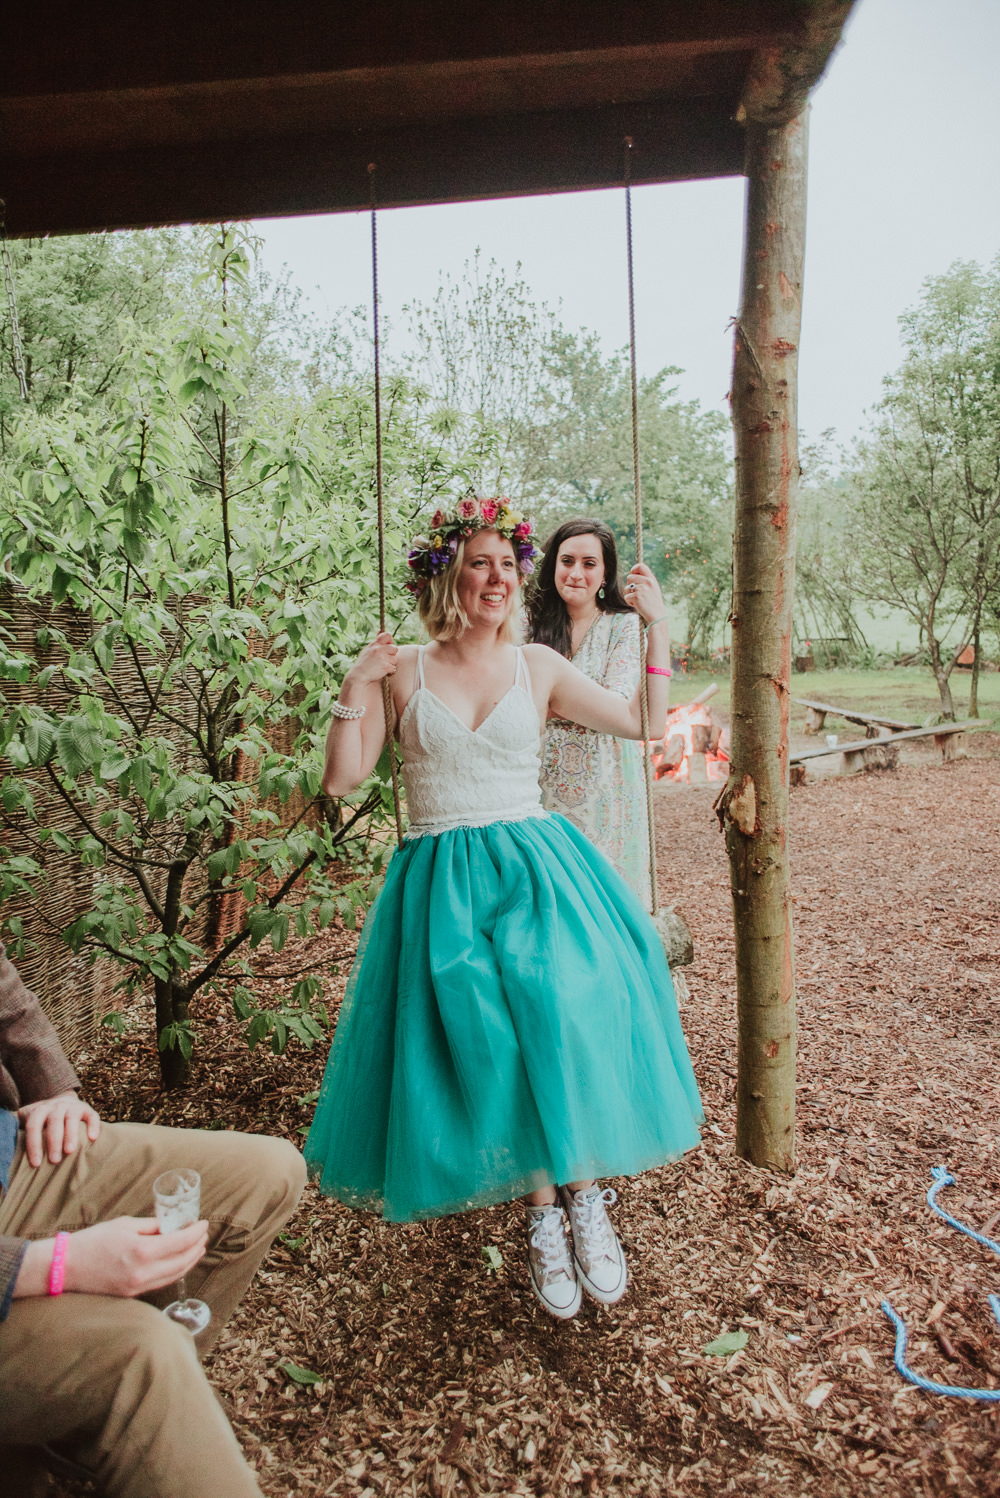 Bride Bridal Dress Gown Skirt Top Green Tutu Plush Tents Glamping Wedding Big Bouquet Photography